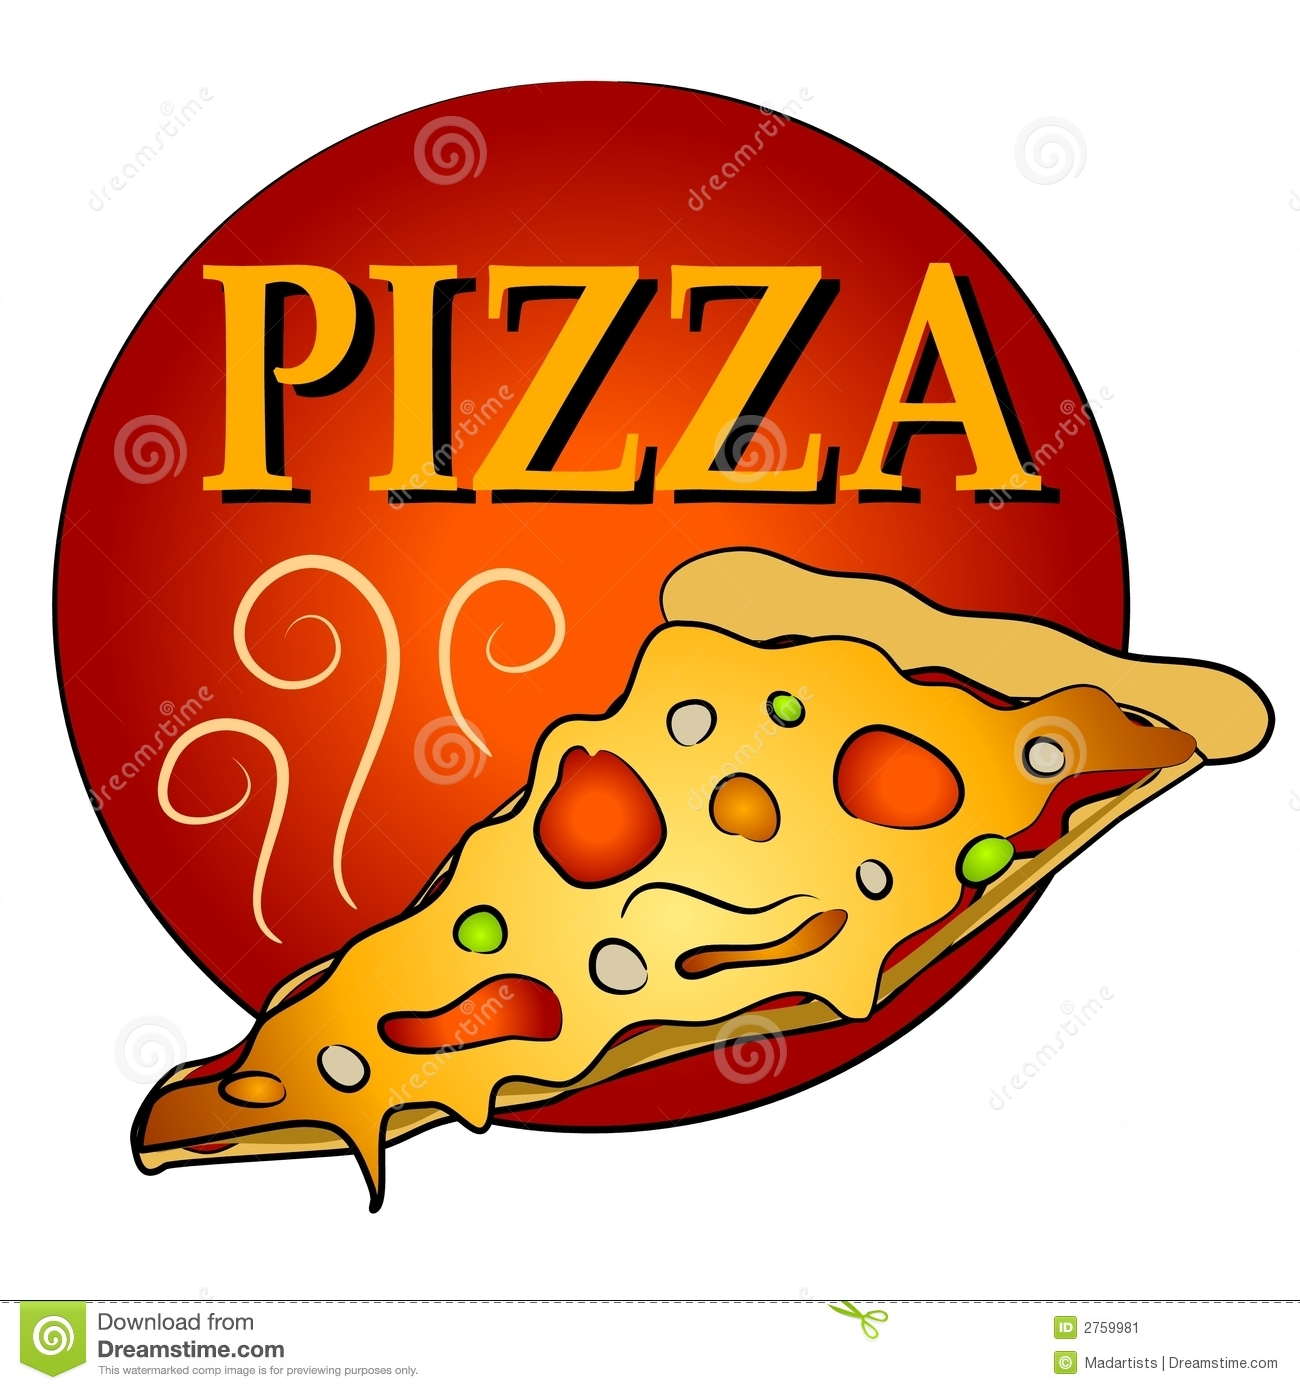 Hot Slice of Pizza Clipart